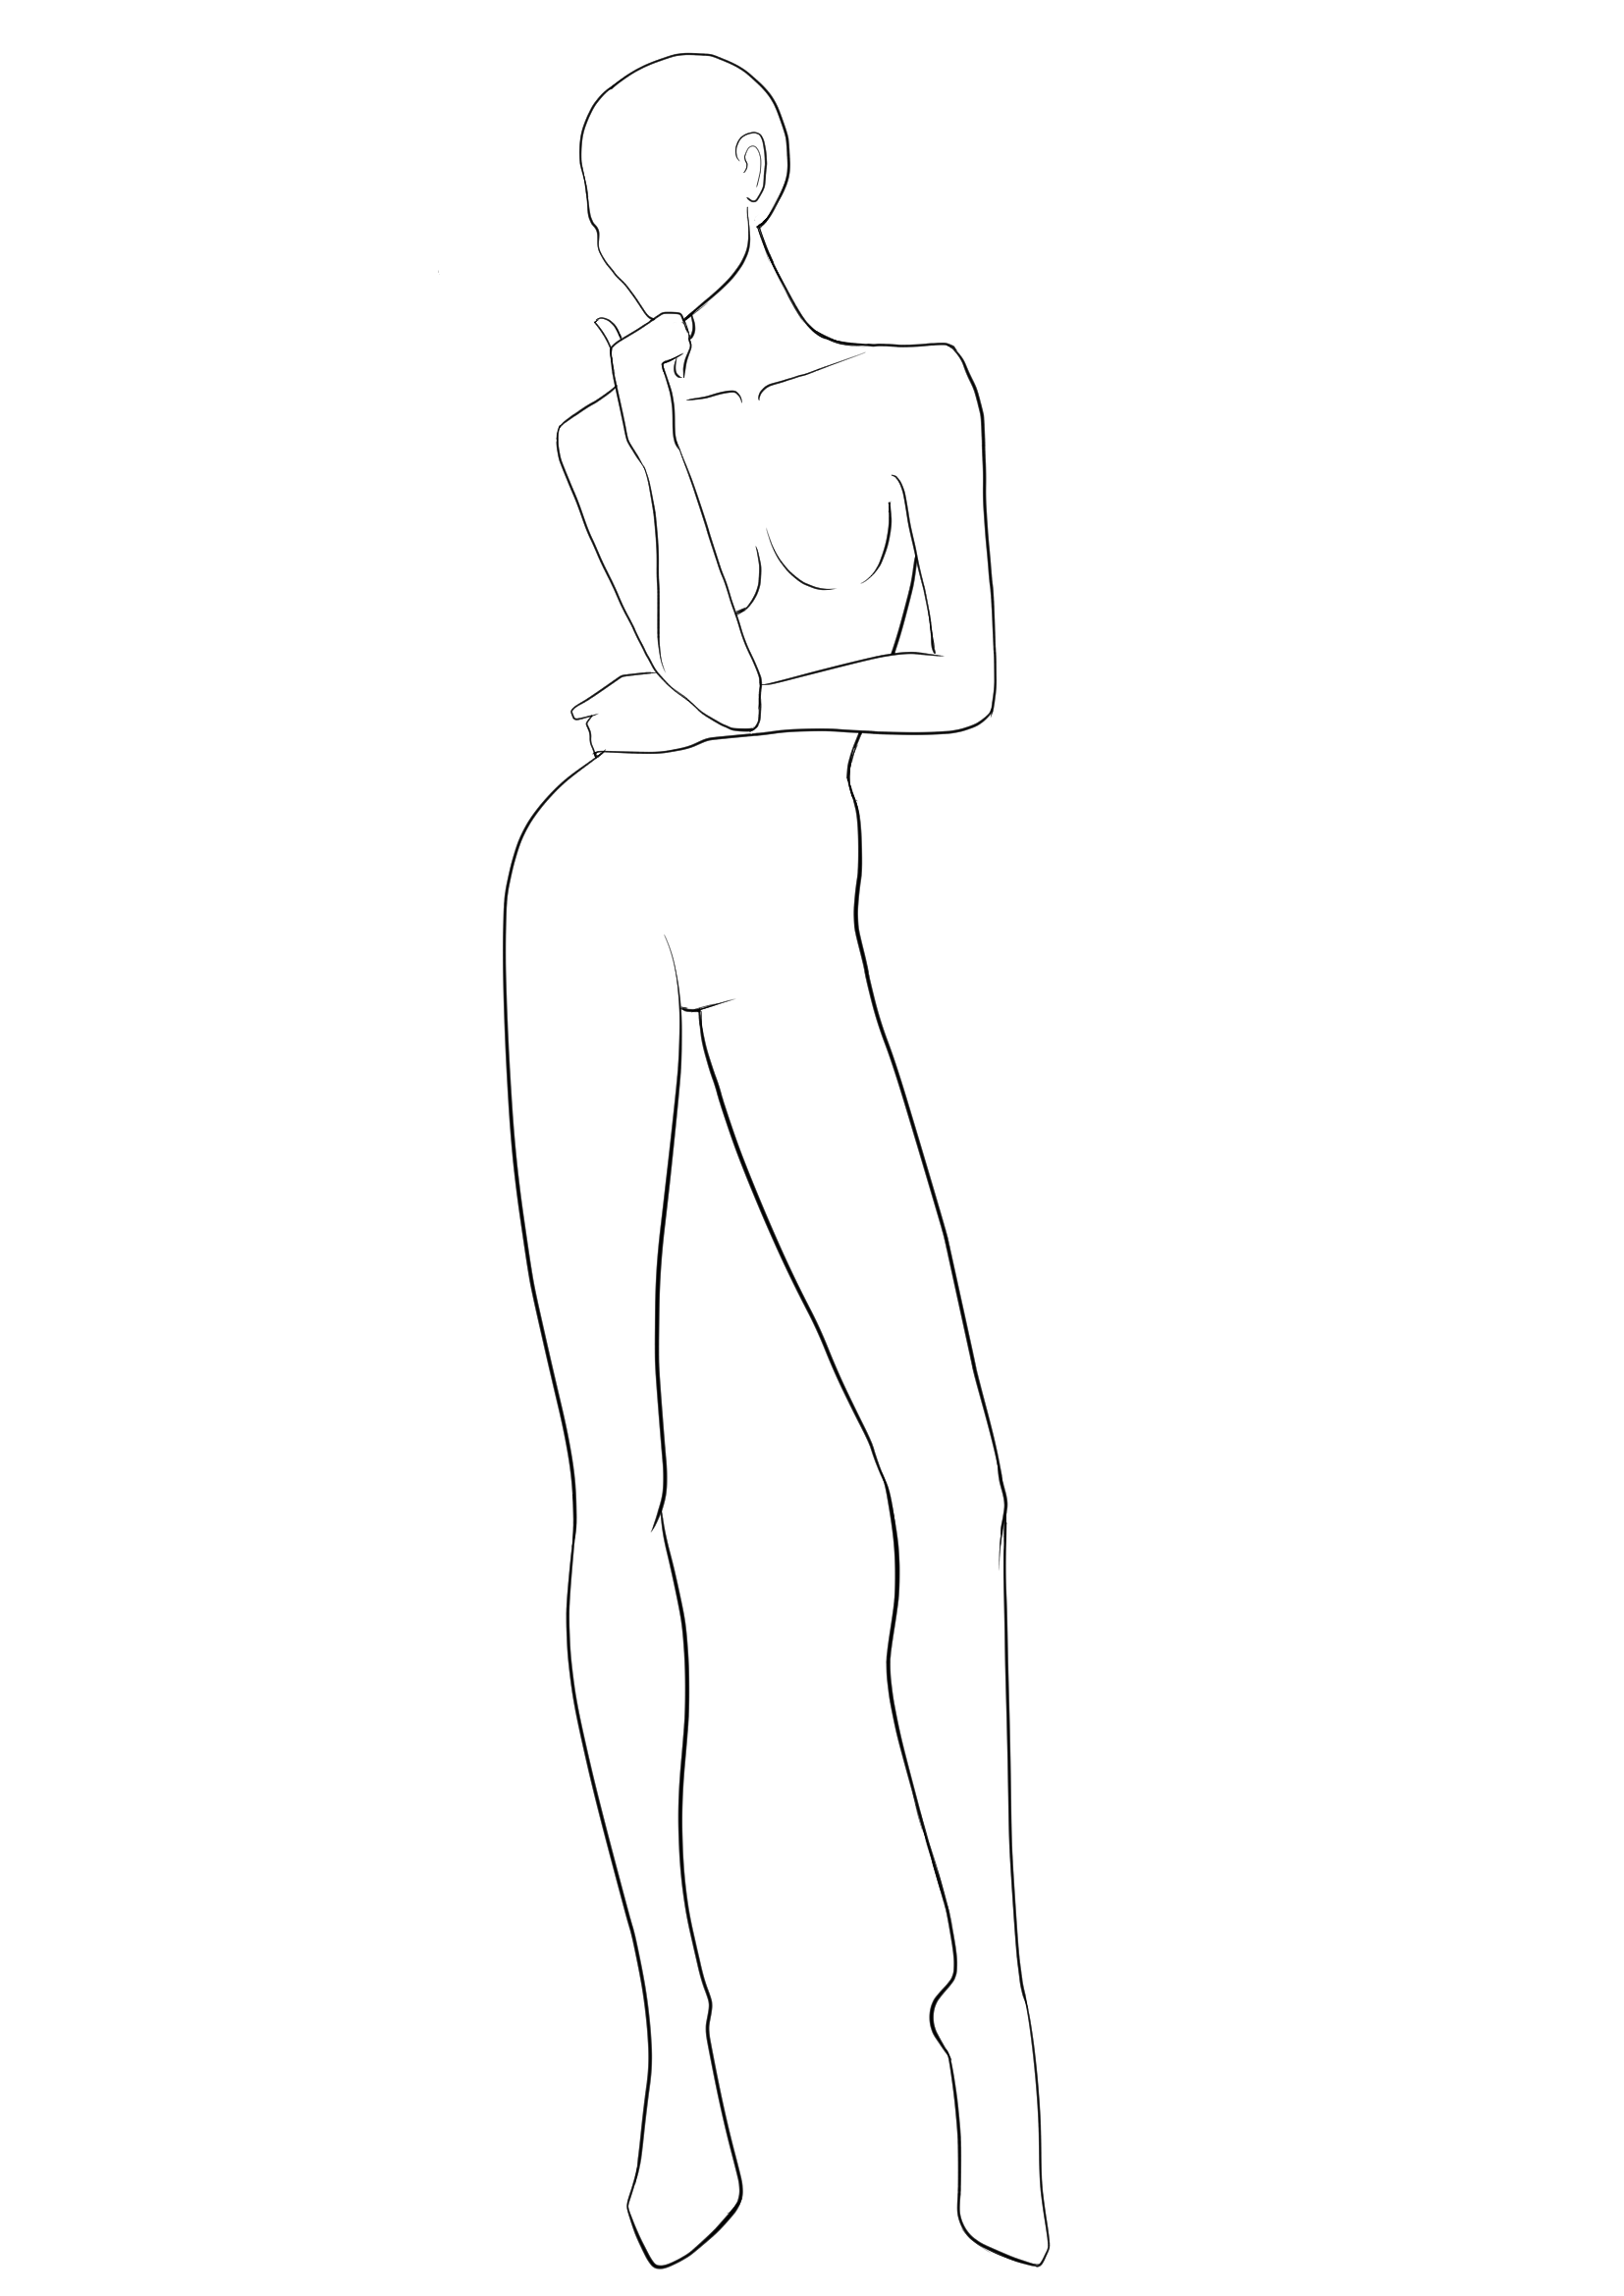 Front View Fashion Figure Template For Designing Sketches